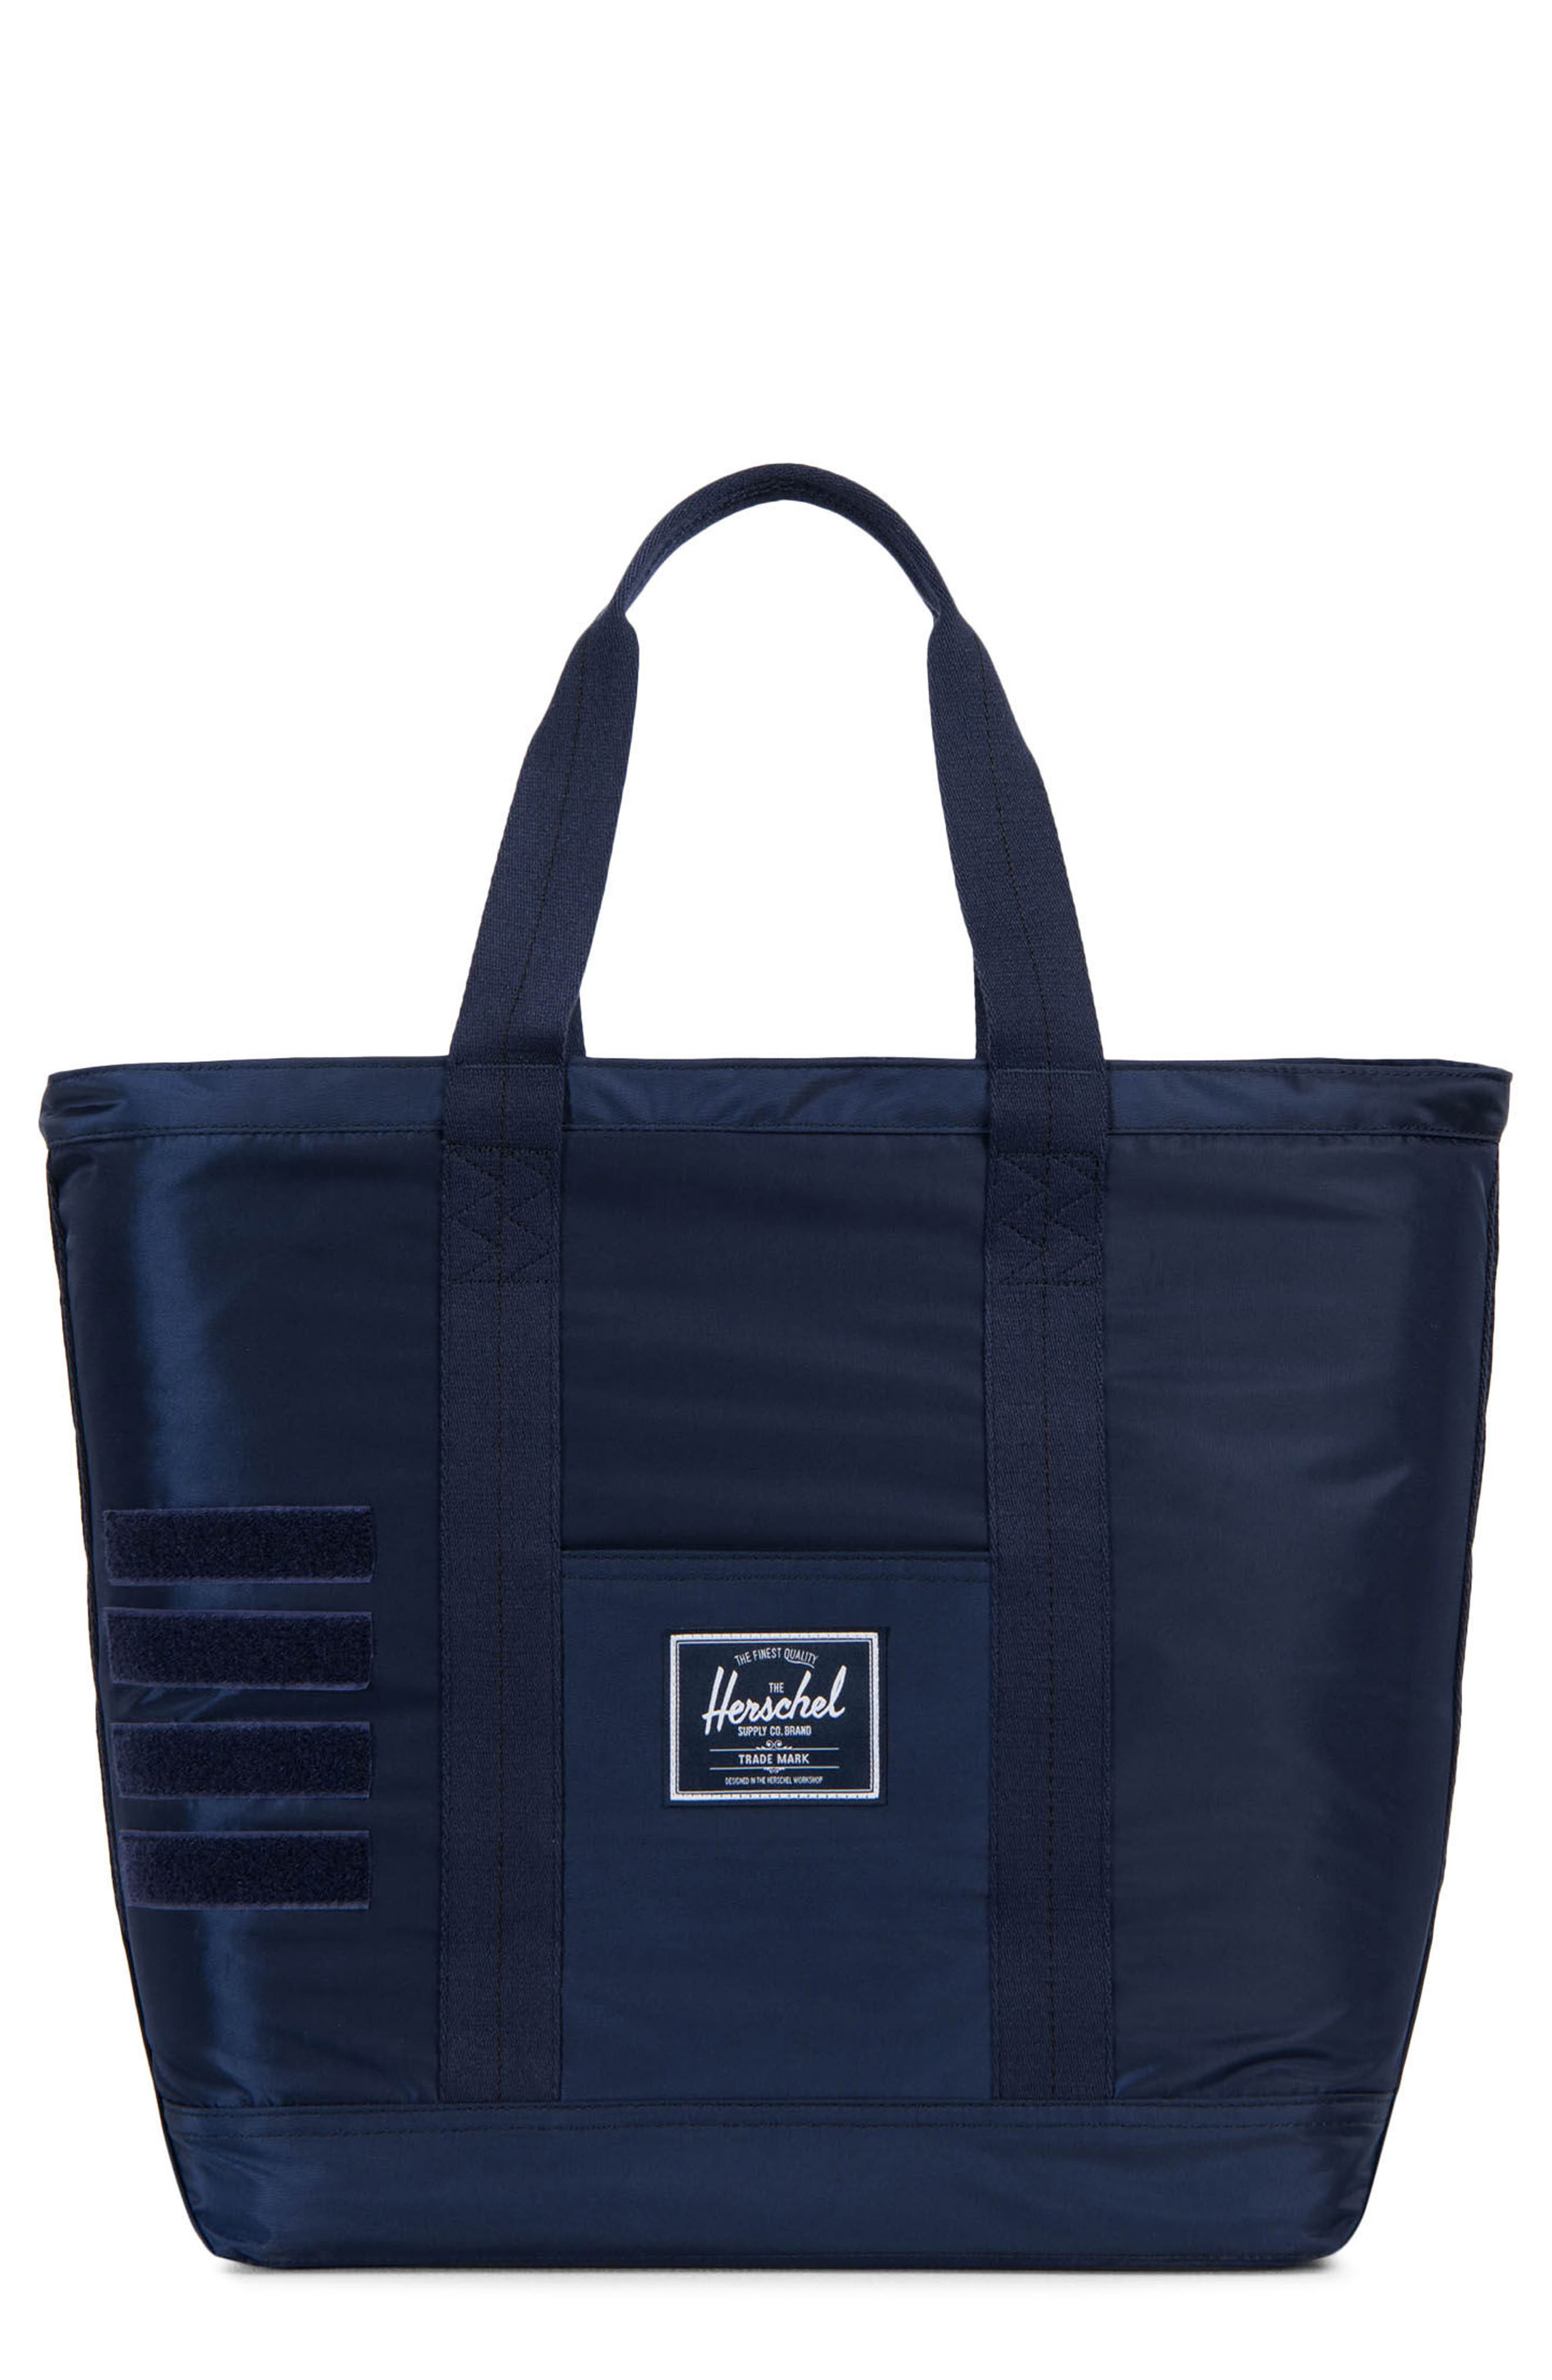 Bamfield Surplus Collection Tote Bag,                         Main,                         color, 477